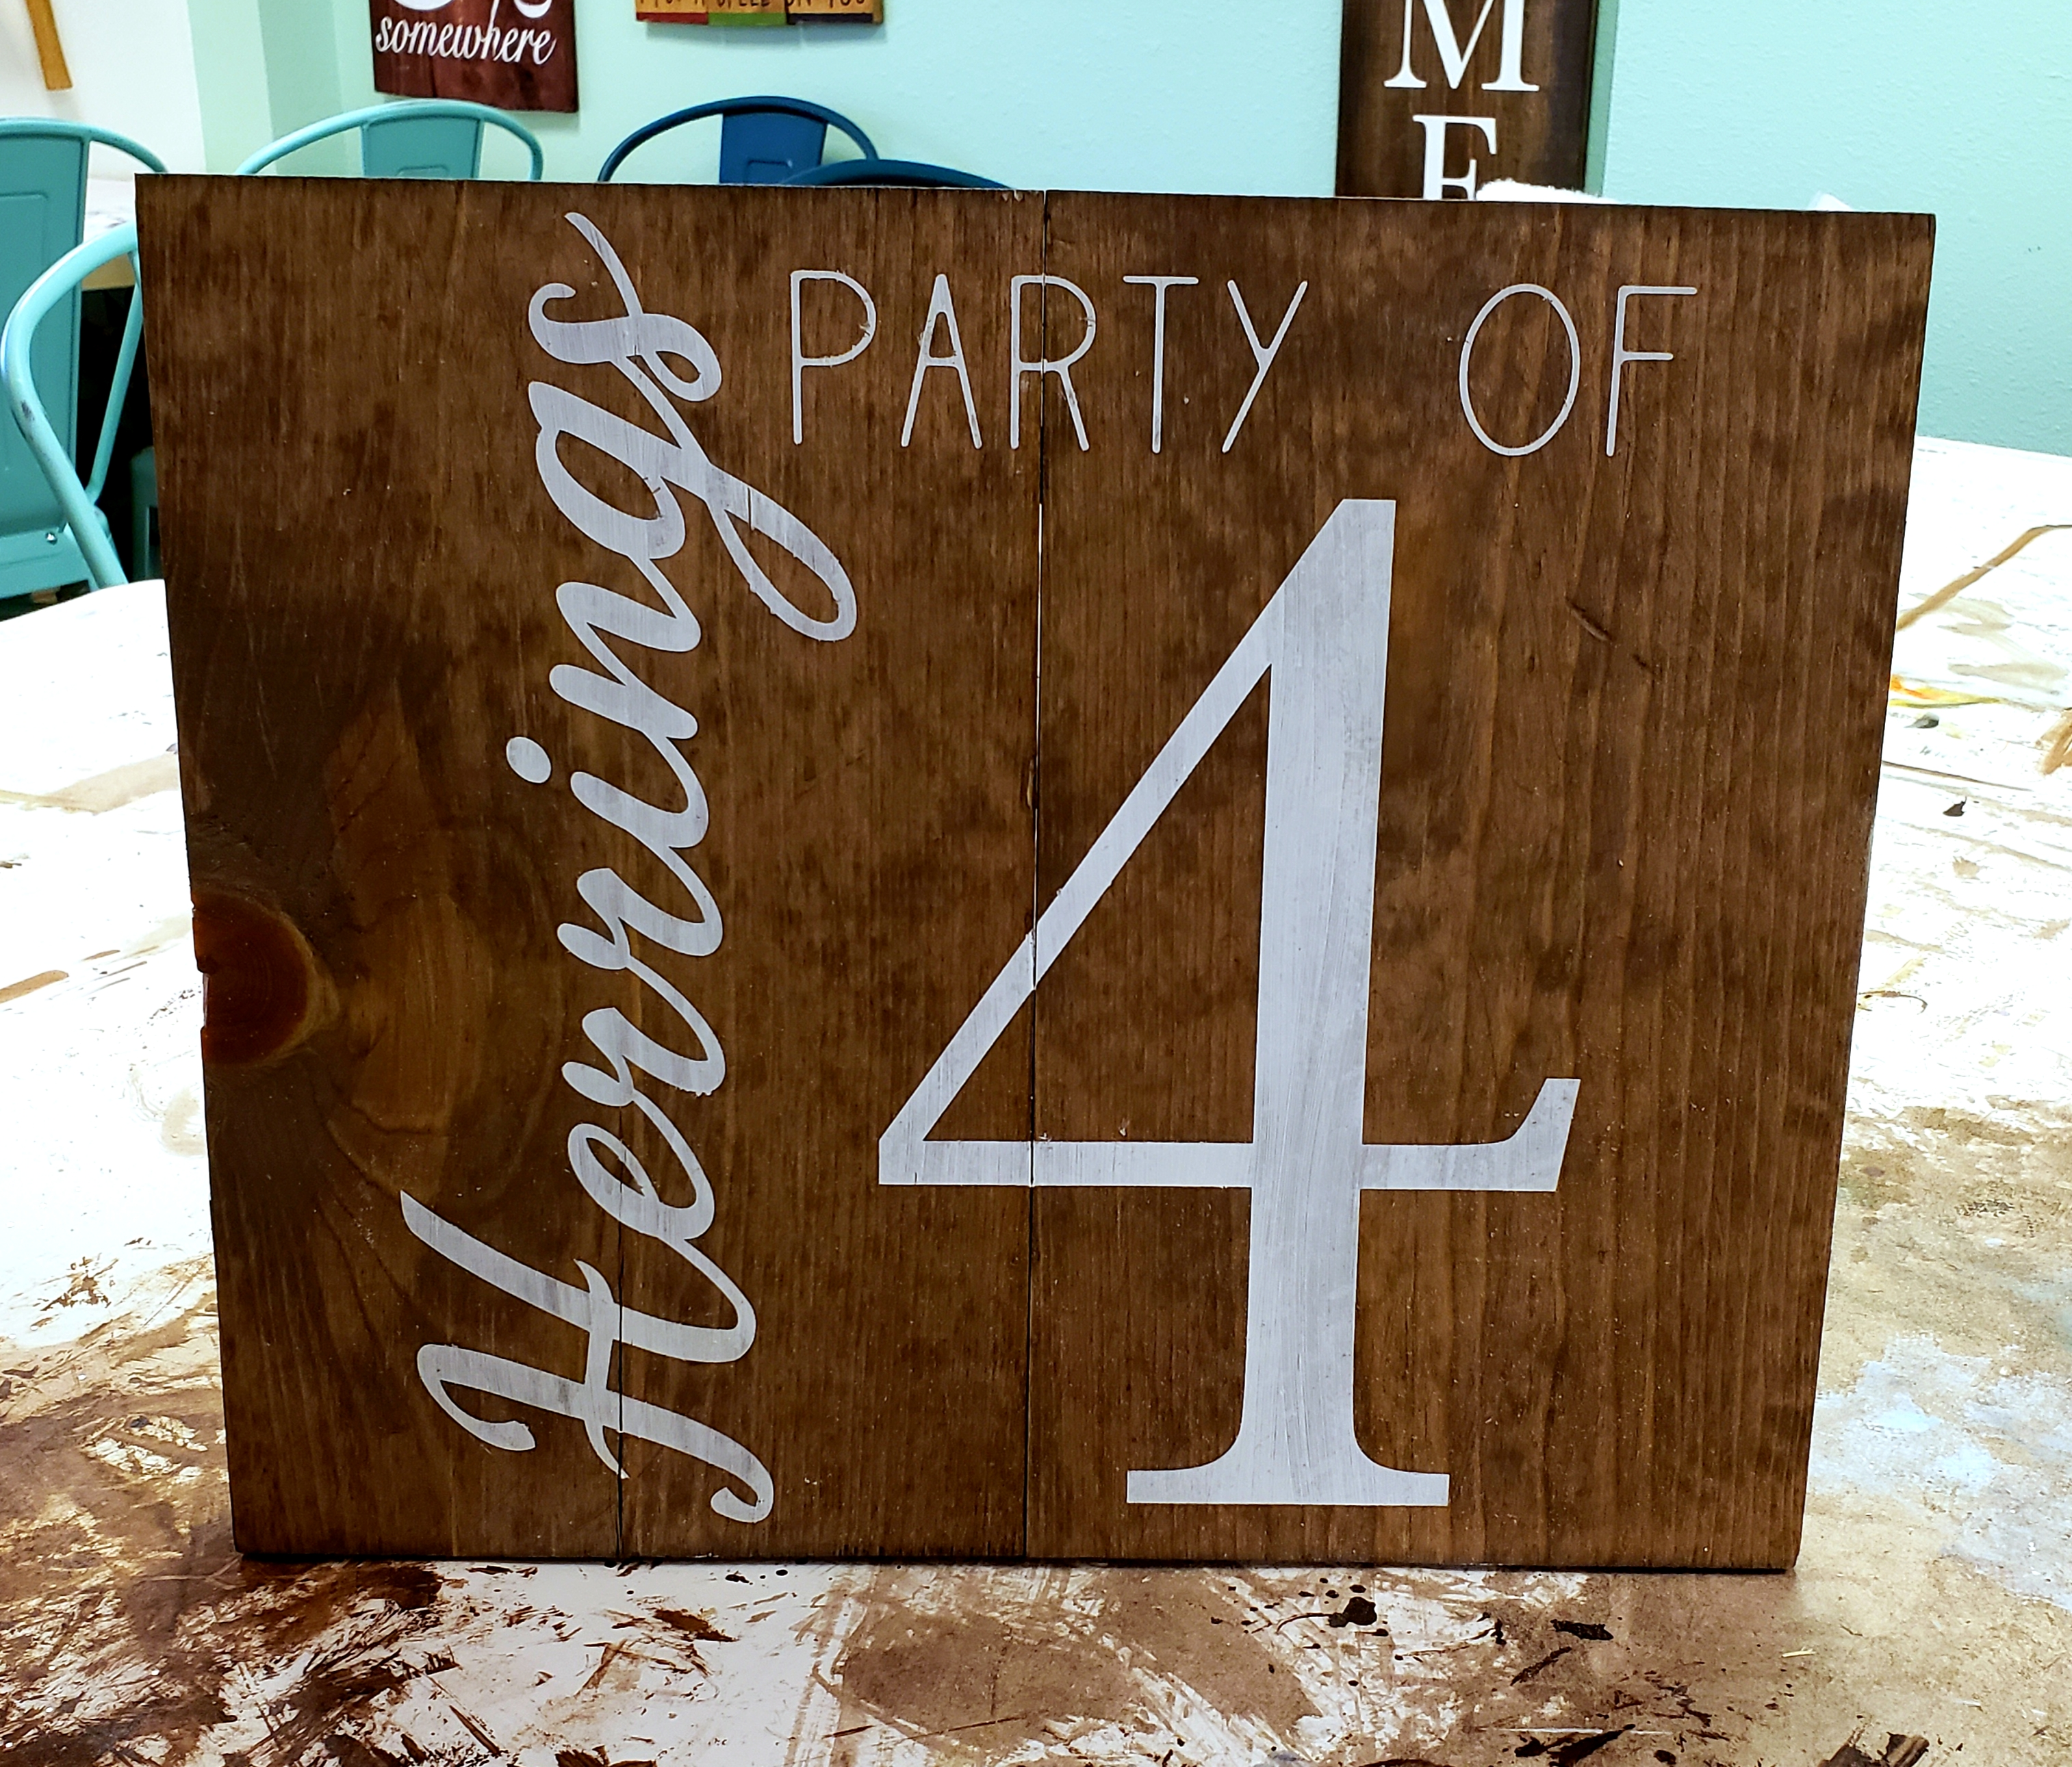 Family Party of...